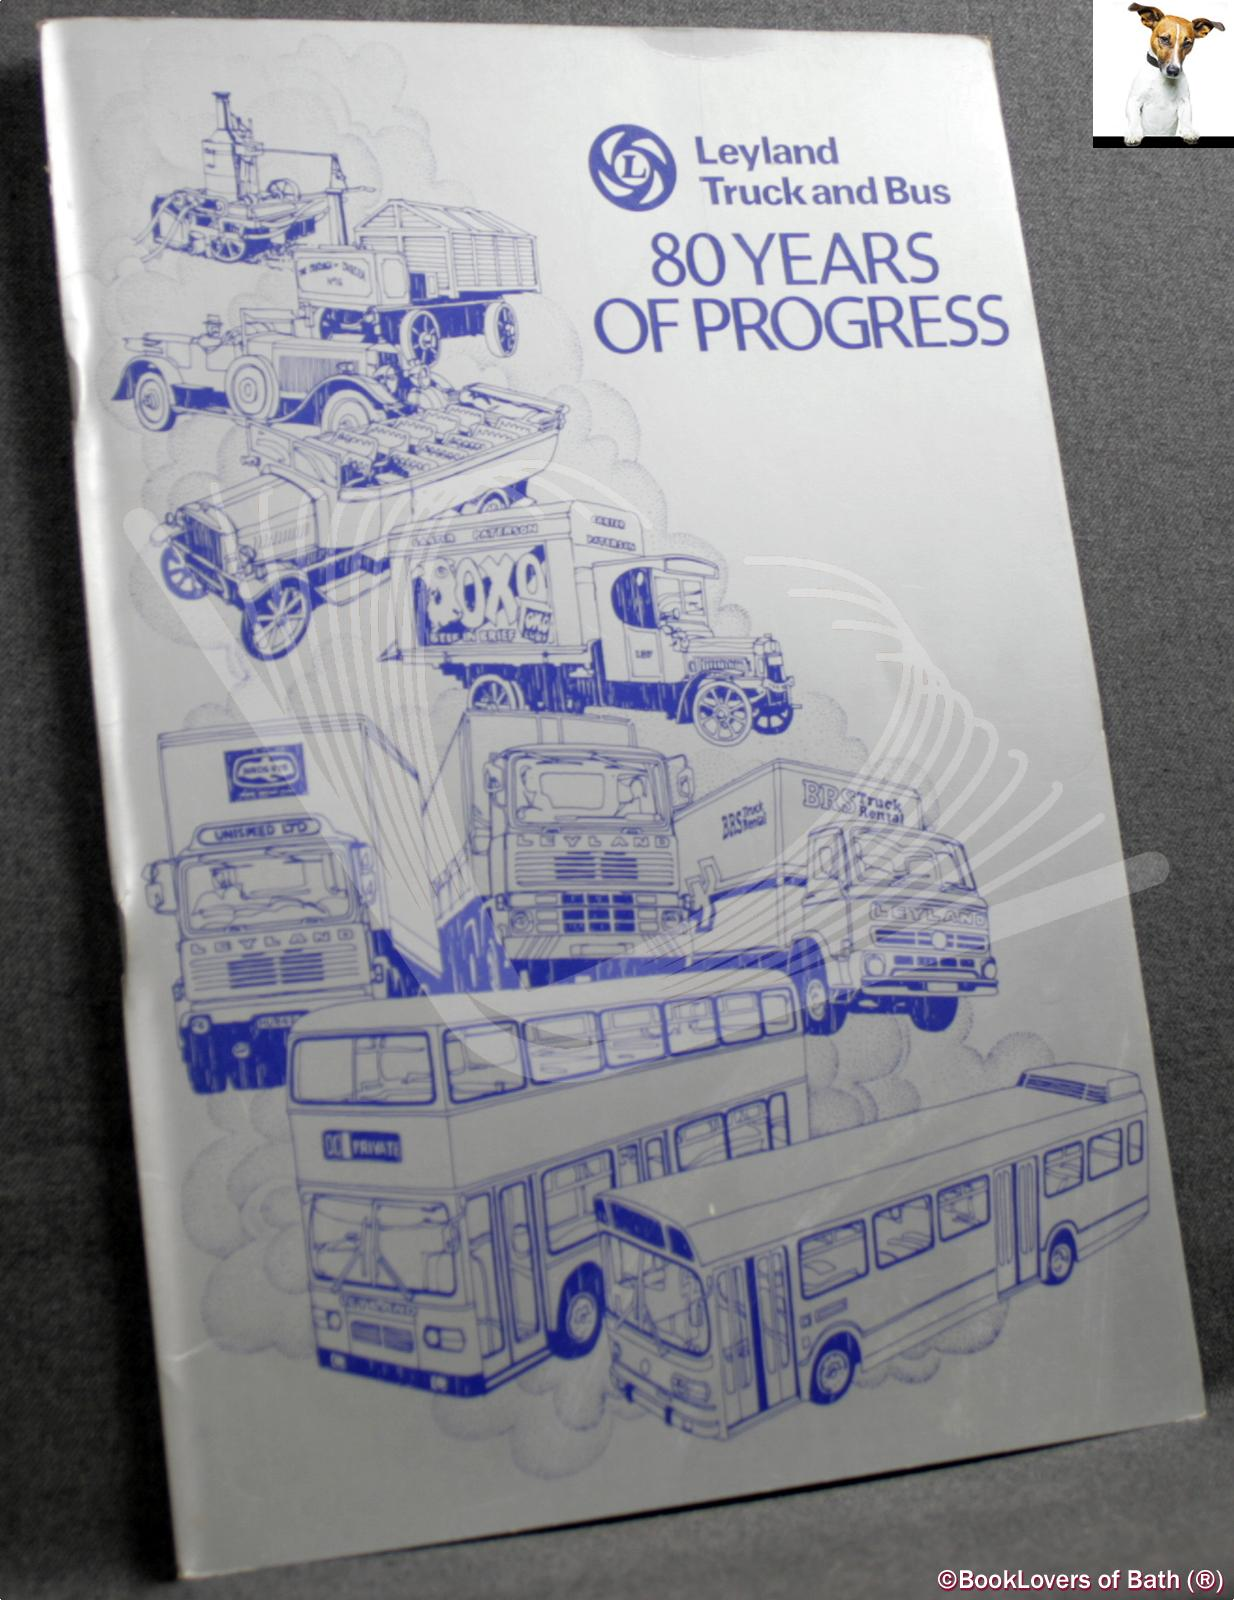 Leyland Truck and Bus: 80 Years of Progress - Anon